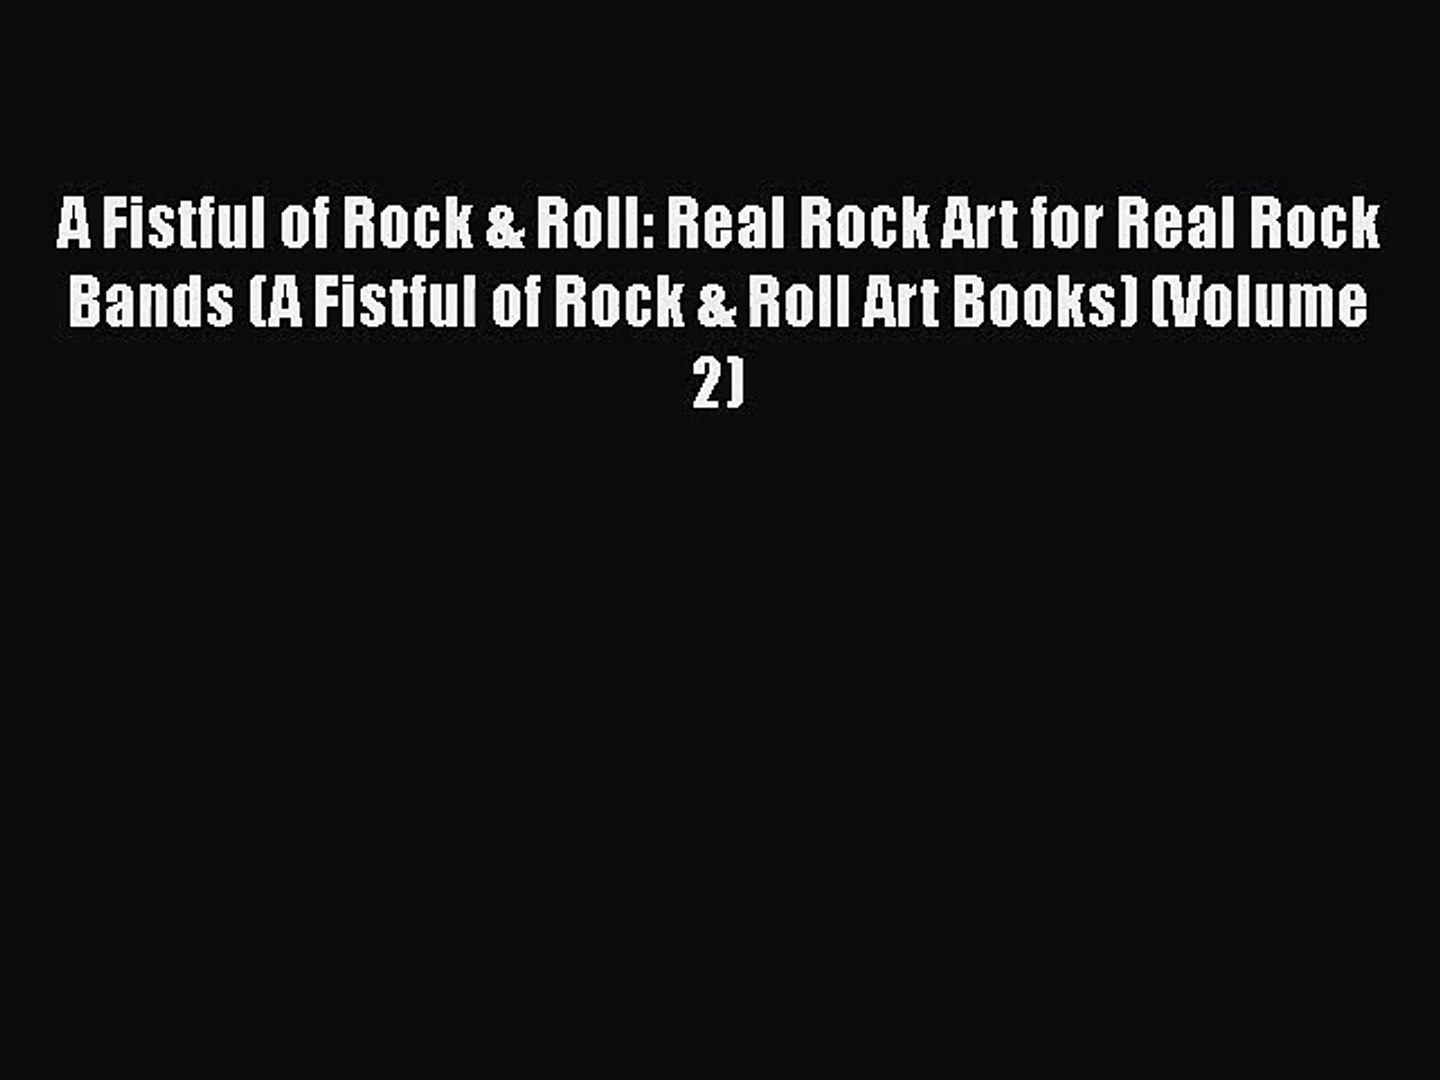 Download A Fistful of Rock & Roll: Real Rock Art for Real Rock Bands (A Fistful of Rock & Ro